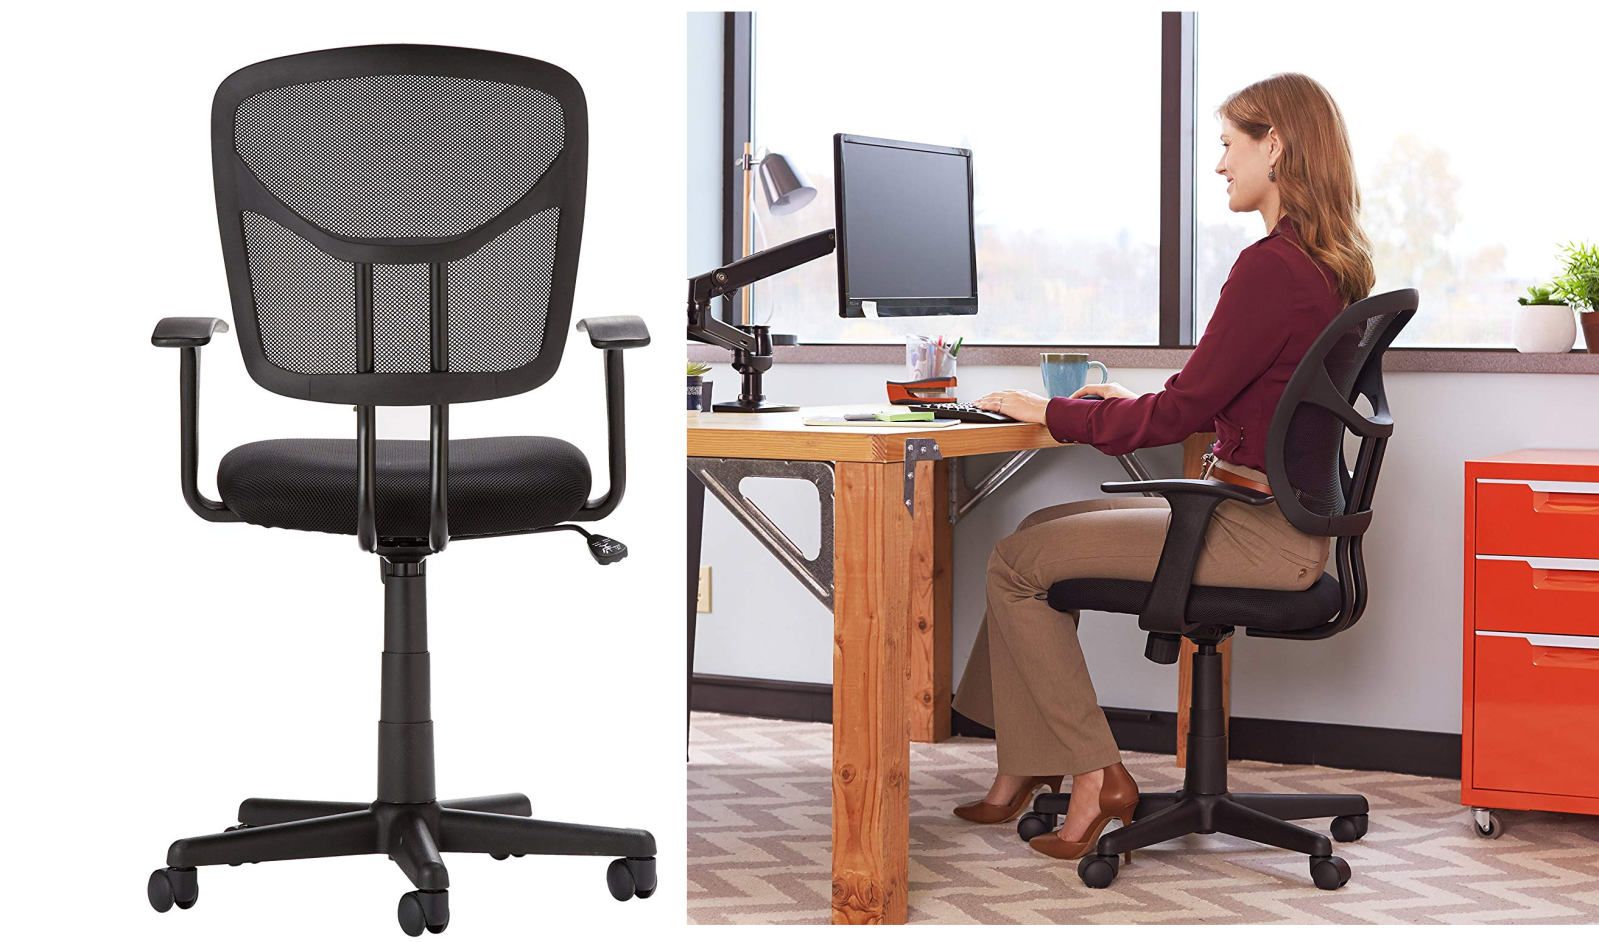 It's time to upgrade your office throne with this ergonomic AmazonBasics chair: $47.50 (Reg. $60)